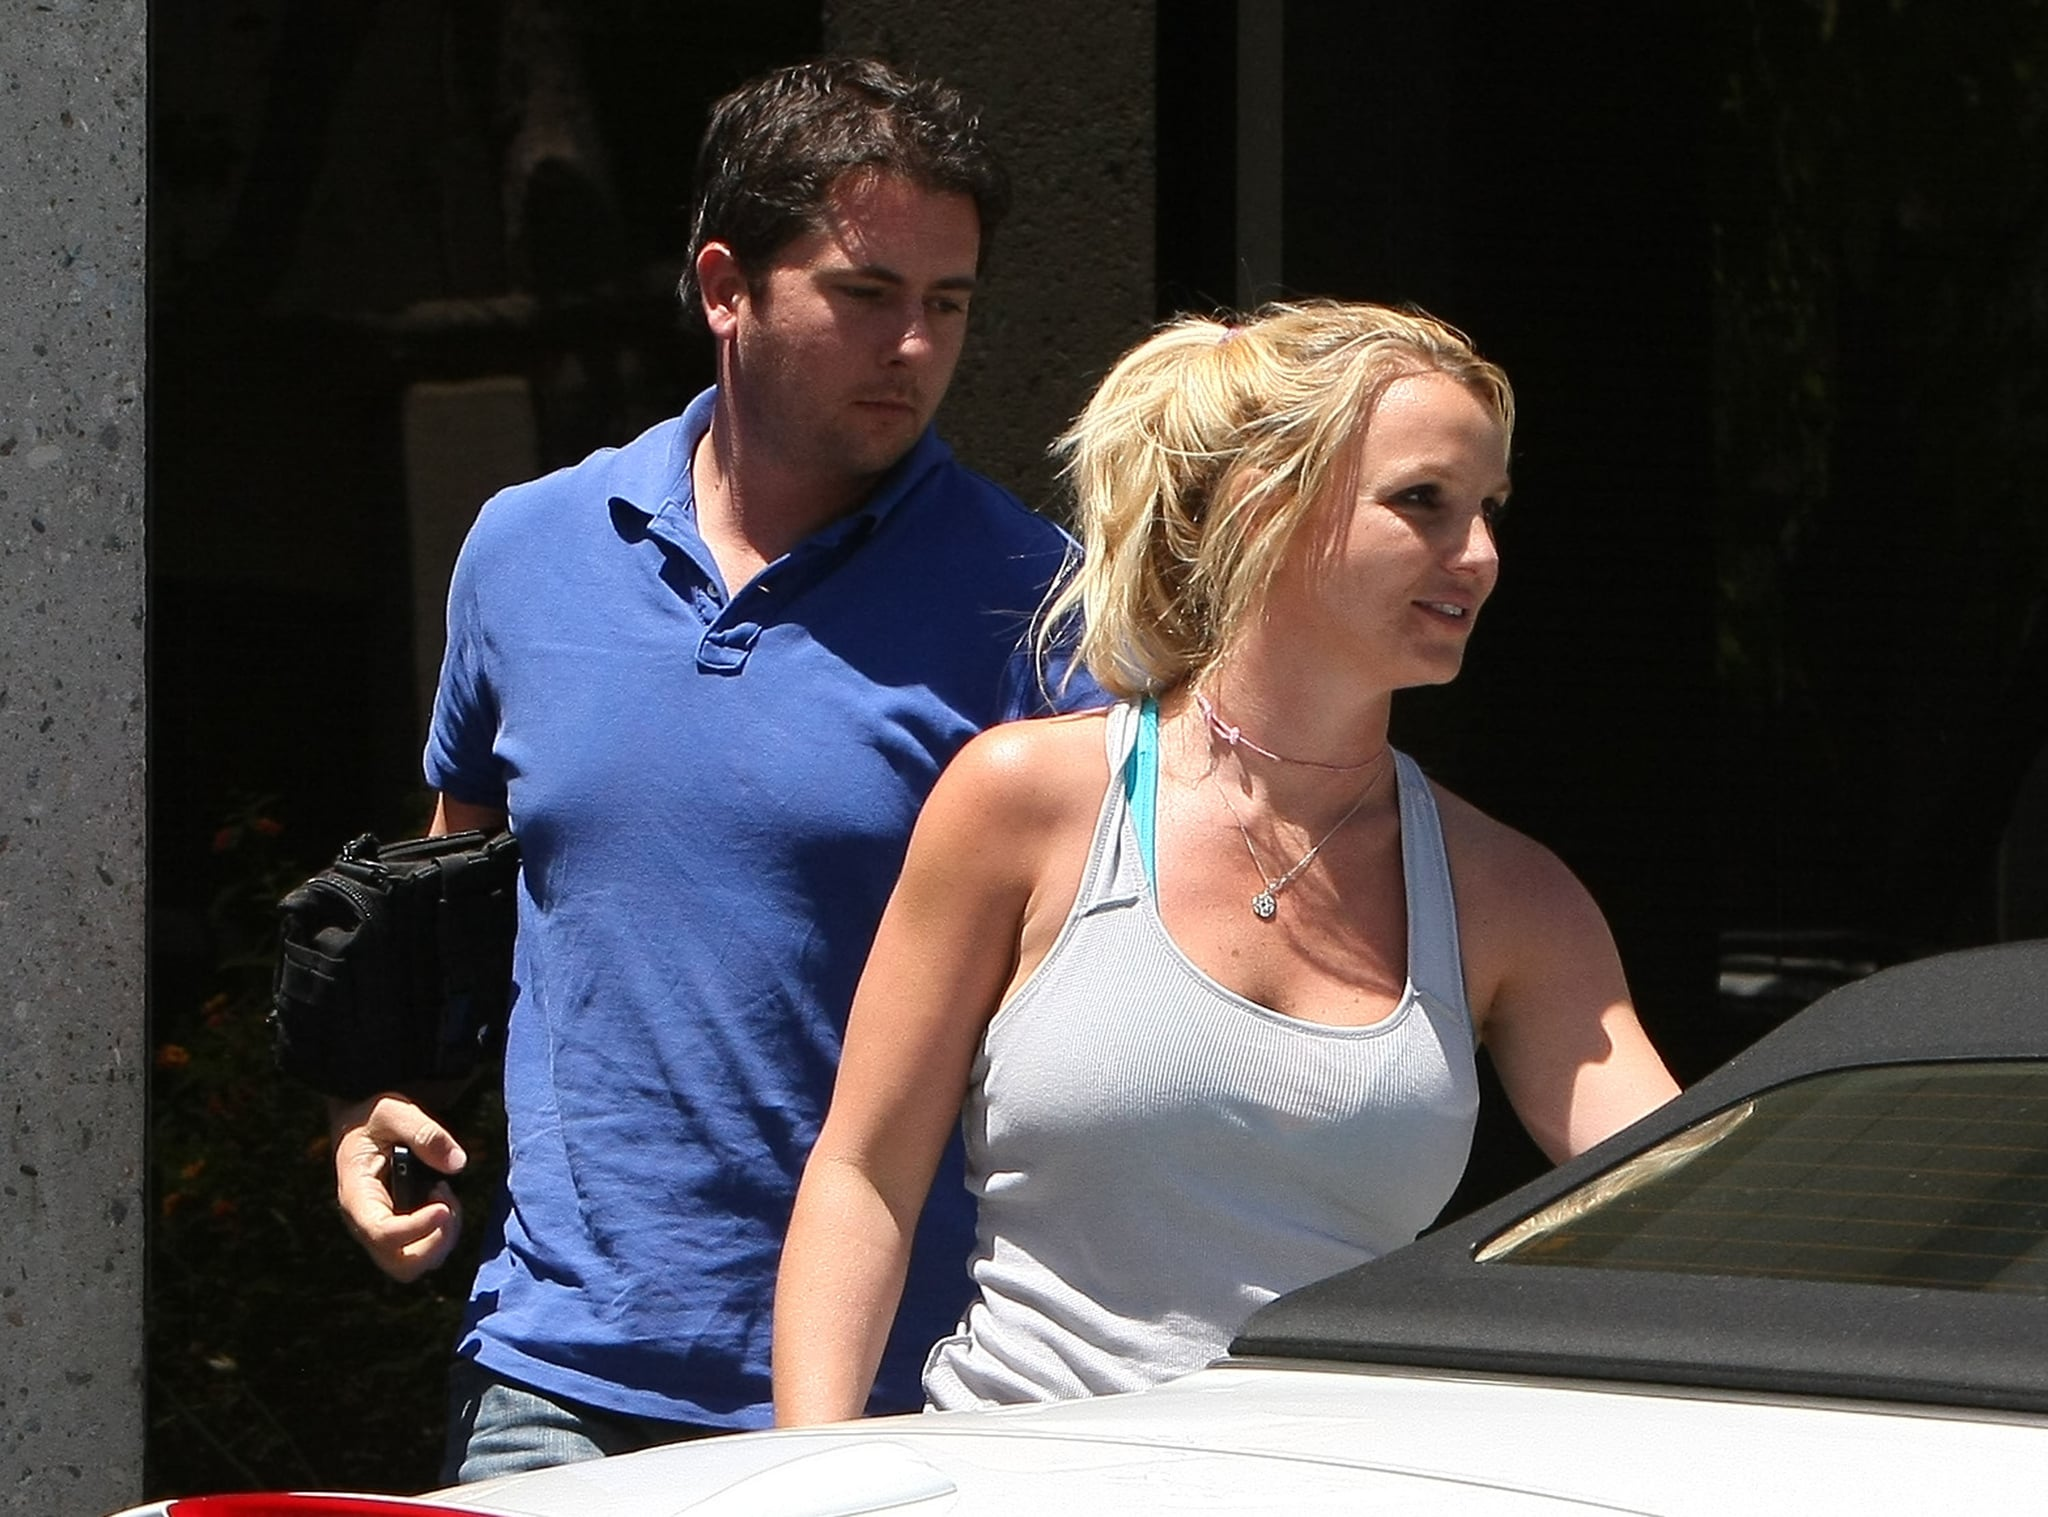 Britney Spears hit up a dance studio in a gray tank top.